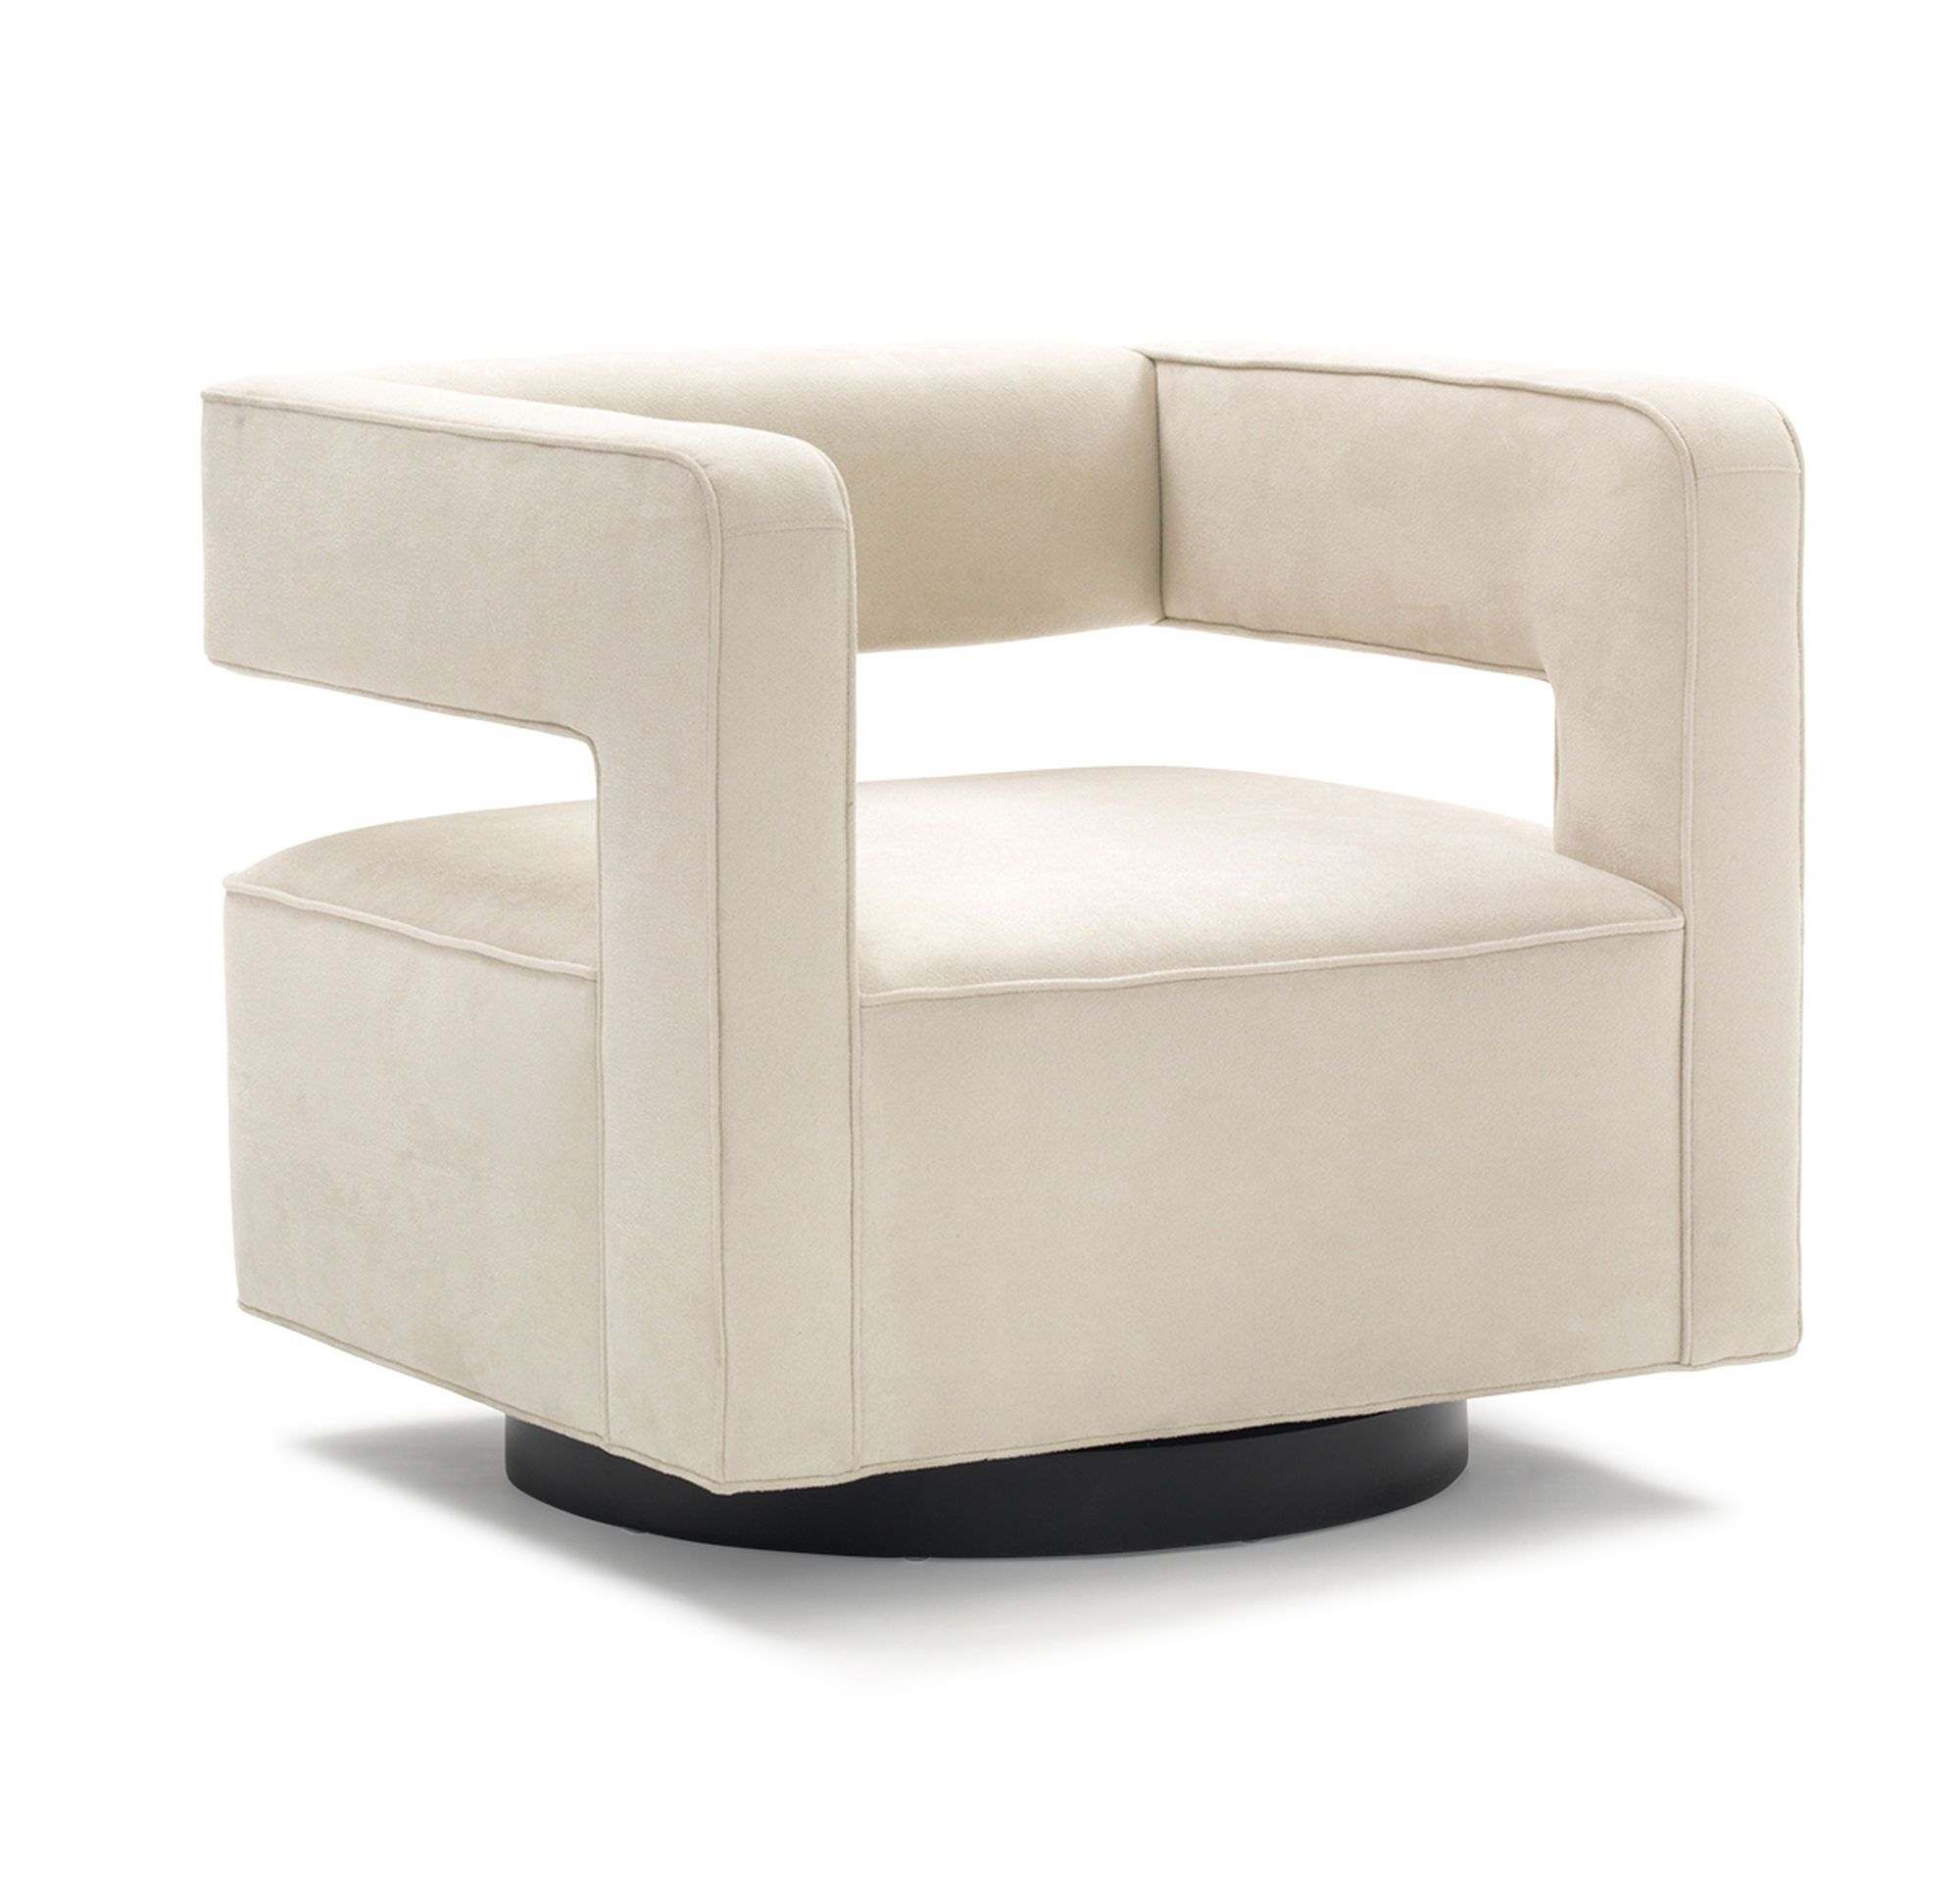 NICO FULL SWIVEL CHAIR, SOFT SUEDE - STONE, hi-res | Beach Modern ...